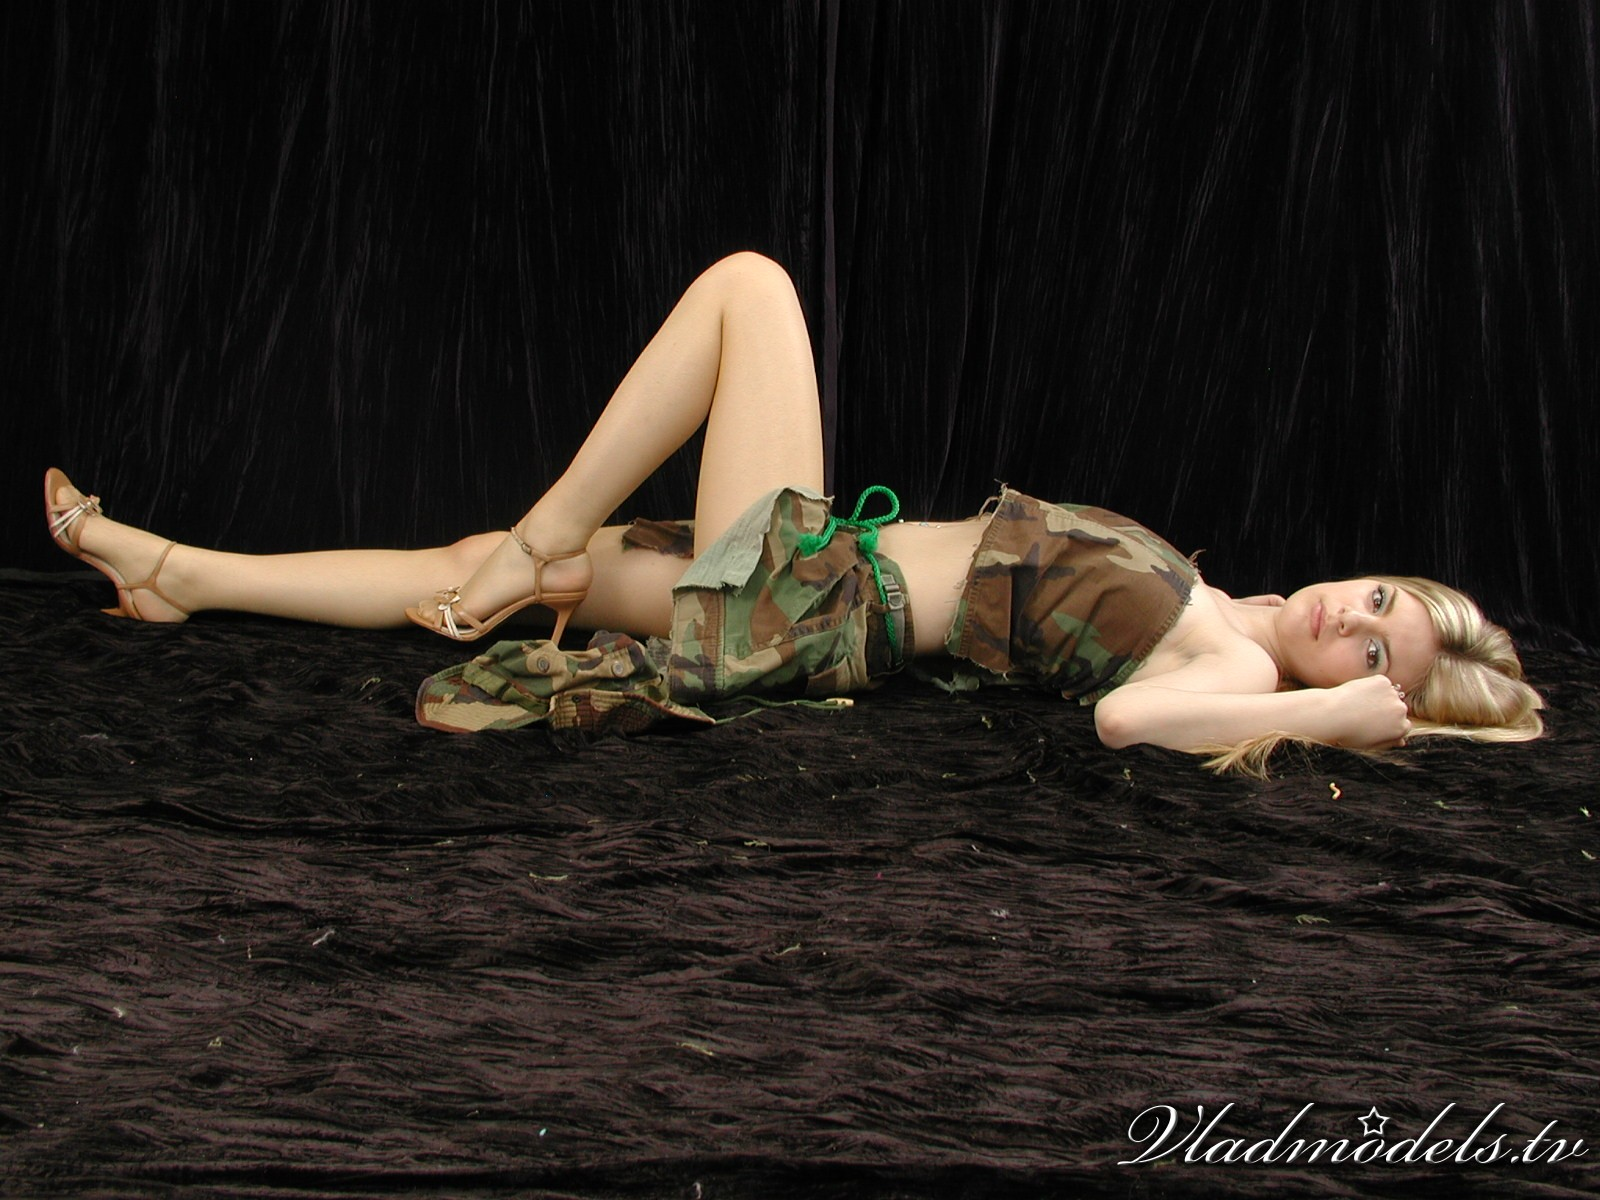 imgchili vladmodels gallery - Image Search by